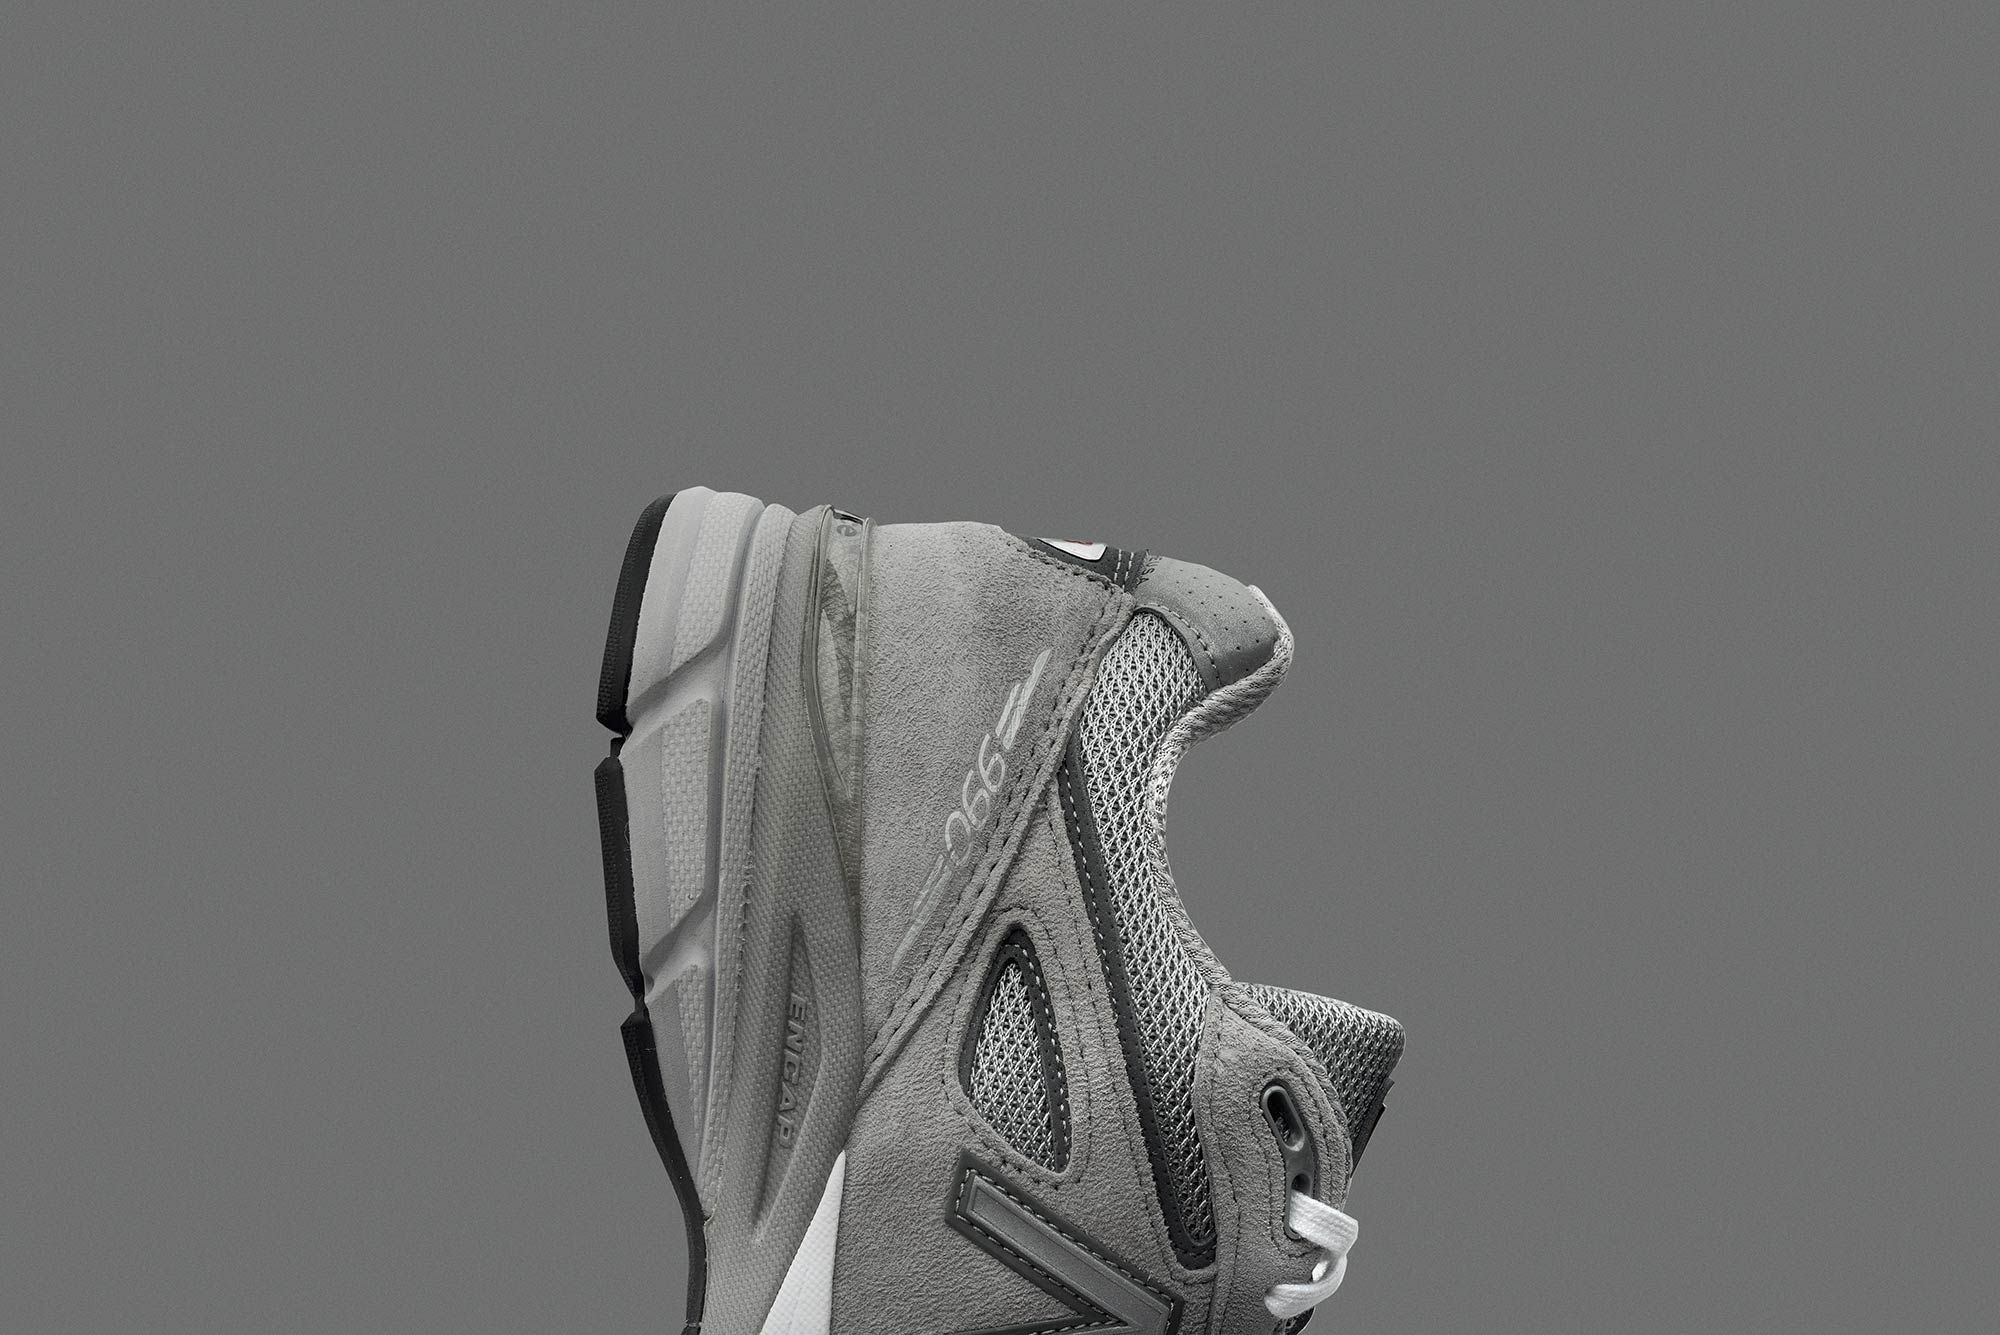 packshot photography of the new balance 990v4 photographed for new balance south africa